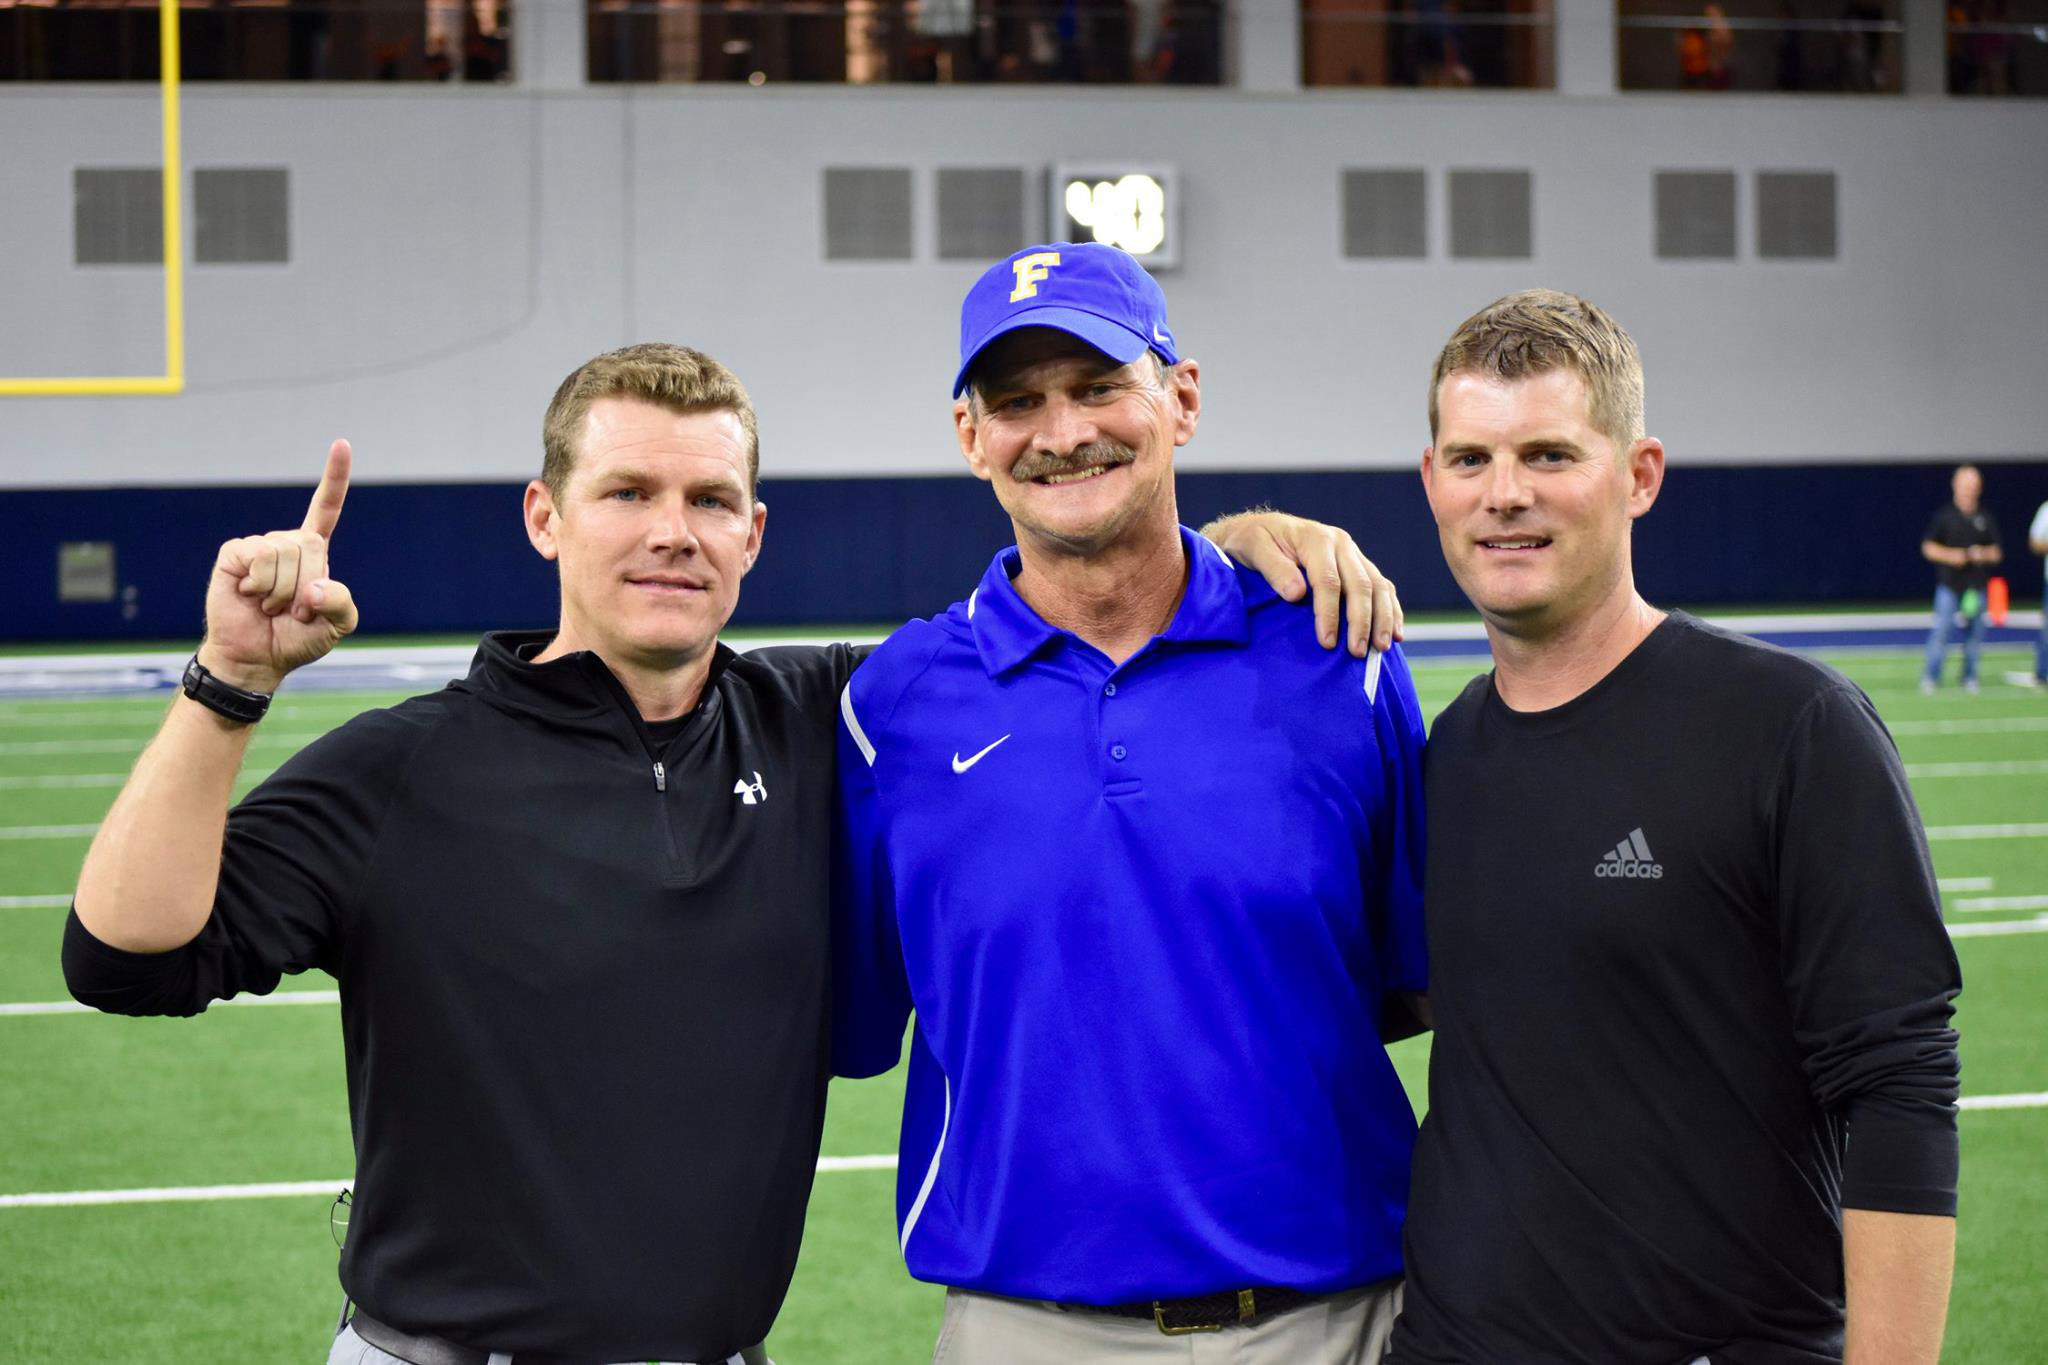 ^ Josh with his father, Vance, and brother, Justin, during a game against Frisco at the Dallas Cowboys' Star Stadium. Josh was coached by his father, and has coached with both his father and his brother.